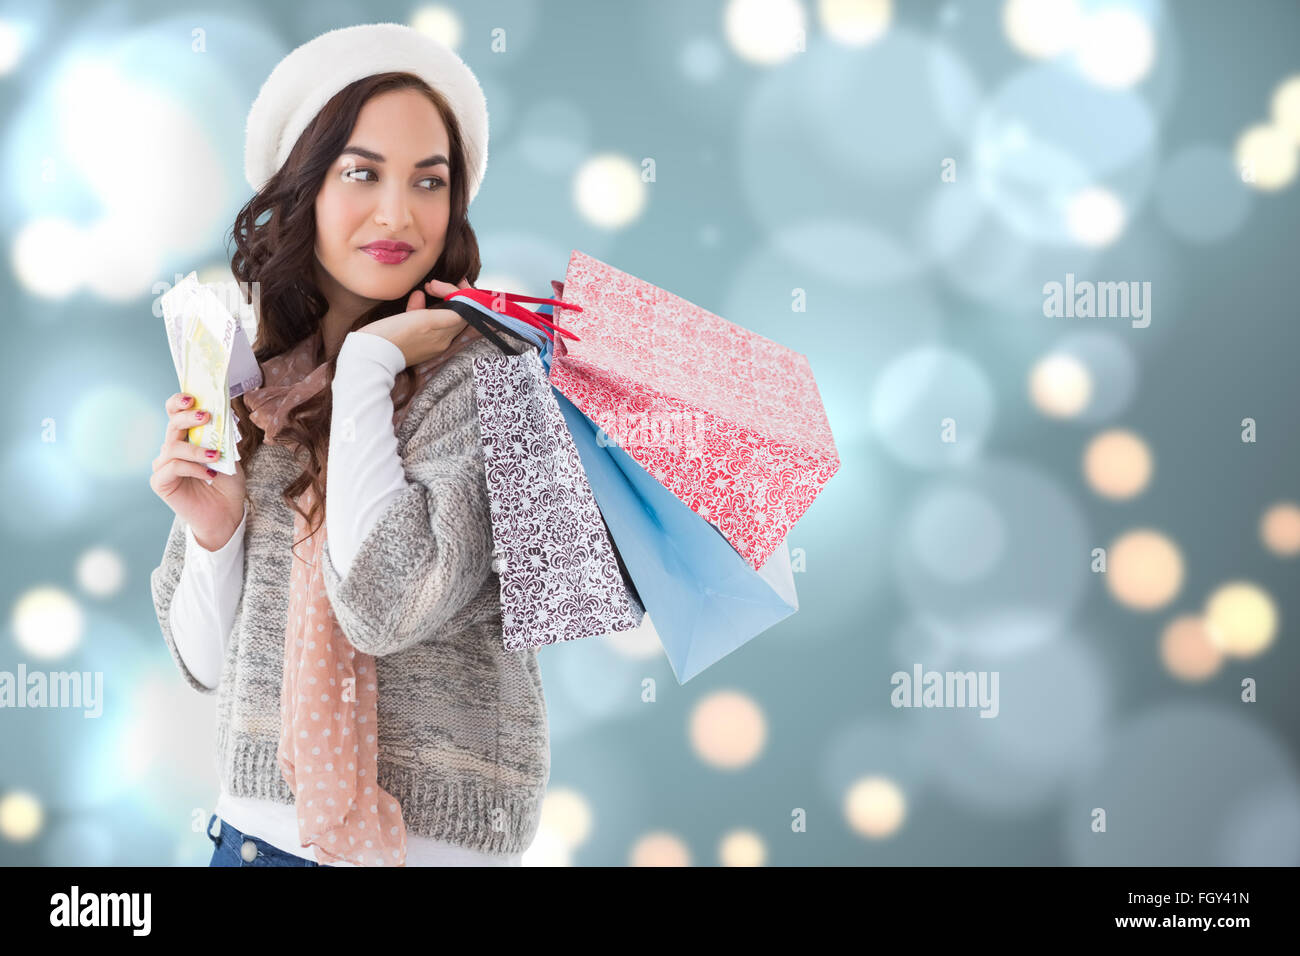 Composite image of brunette holding cash and shopping bags - Stock Image